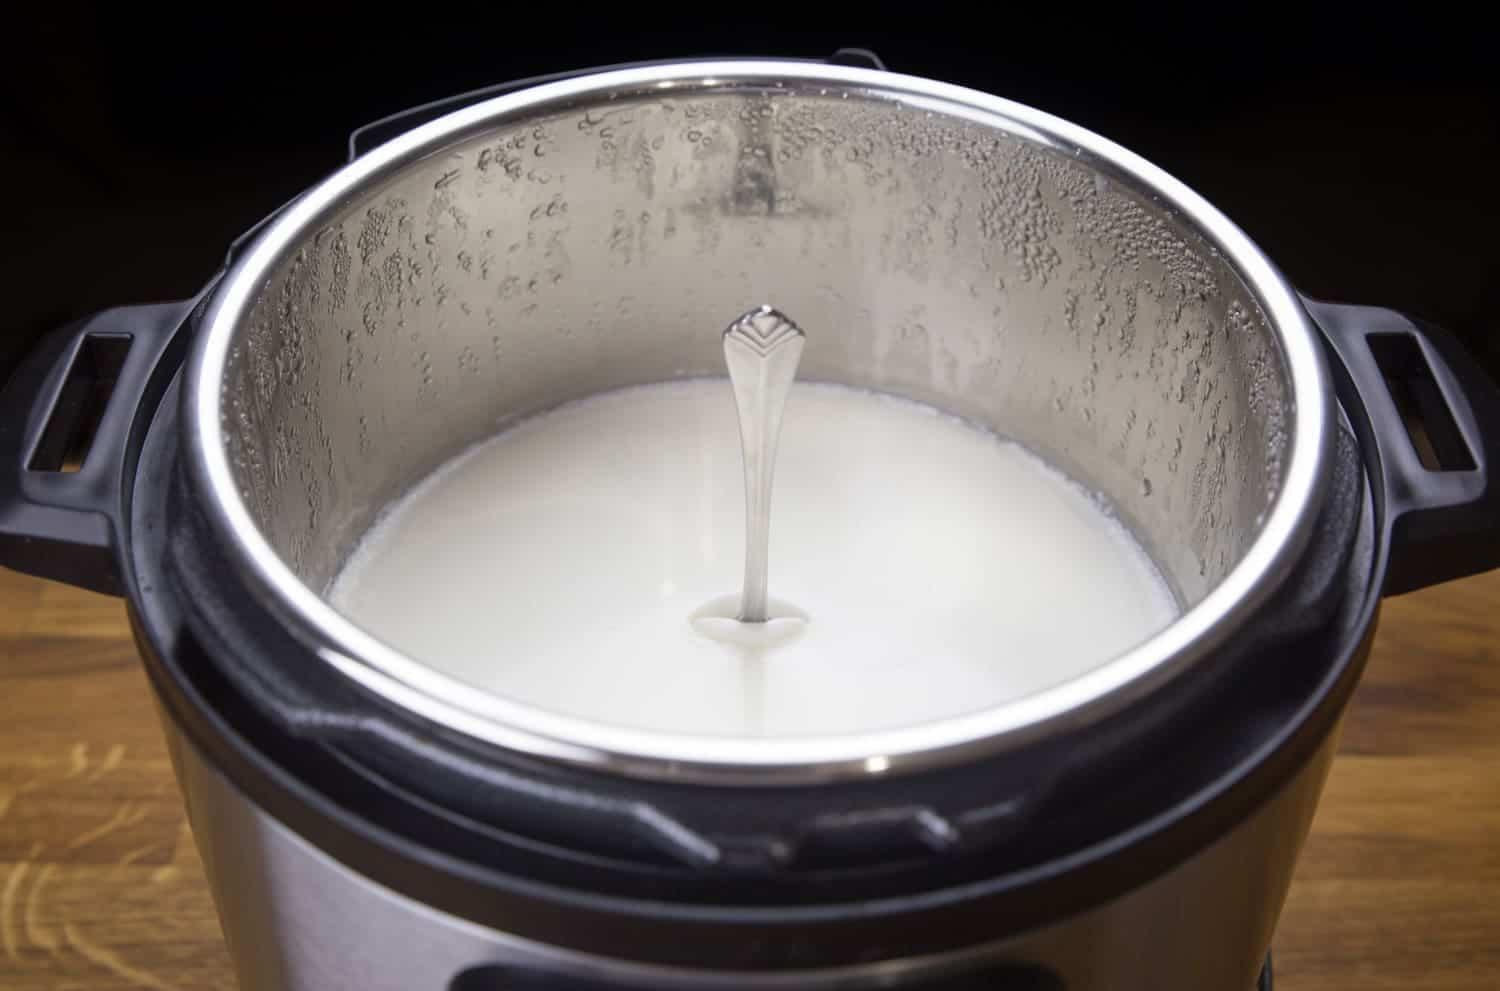 Foolproof Instant Pot Yogurt Recipe #12 (Pressure Cooker Yogurt): Step-by-Step Guide on how to make thick creamy homemade yogurt based on 12 experiments.